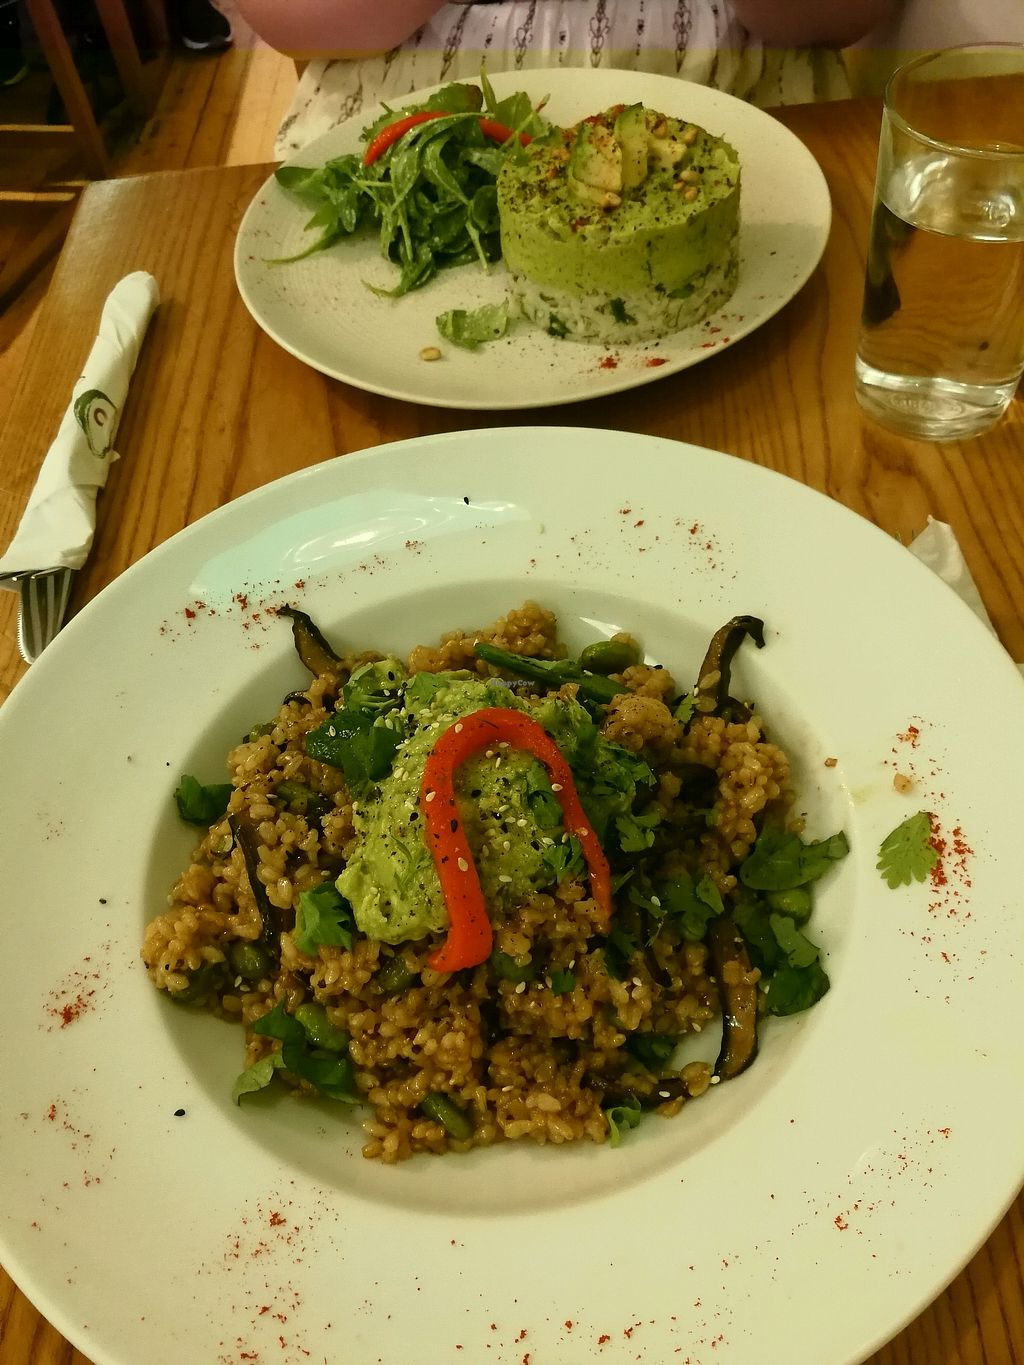 """Photo of Avocado  by <a href=""""/members/profile/Julia_Osx"""">Julia_Osx</a> <br/>Luminous vegan and Rumis dream ❤️ <br/> September 13, 2017  - <a href='/contact/abuse/image/26015/304004'>Report</a>"""